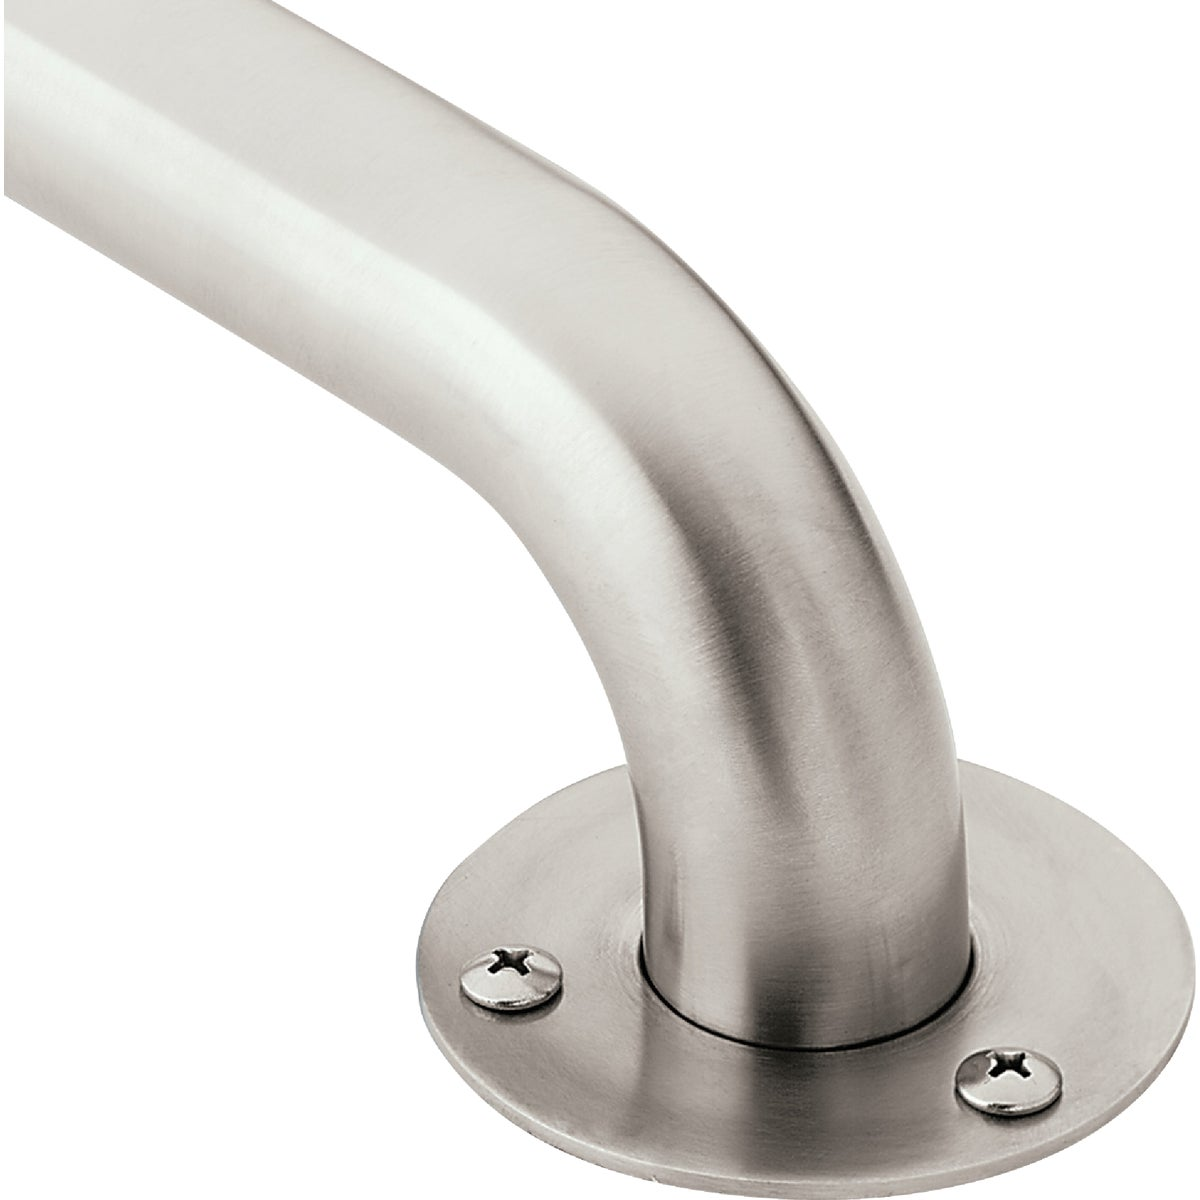 "SS 36"" EXPOSED GRAB BAR - LR7536 by C S I Donner"